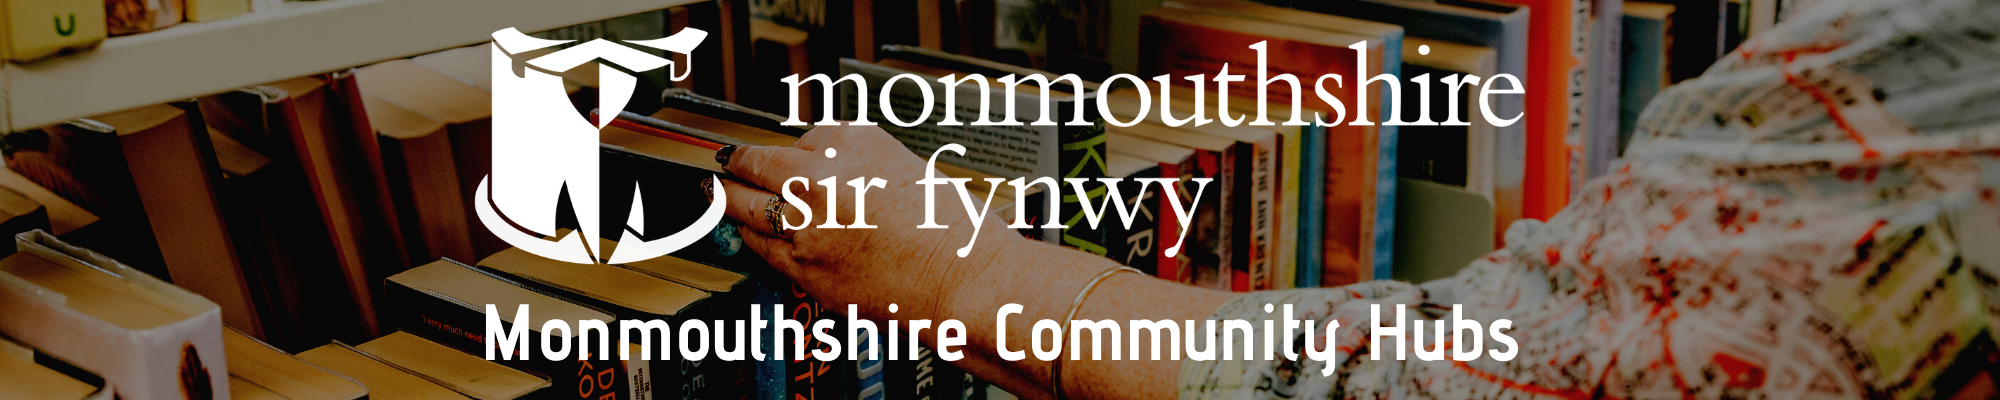 Background image is a photo of book shelf with Ladies hand reaching for a book.  Text on top of the image is the Monmouthshire County Council logo with Monmouthshire Community Hubs below it in White font.